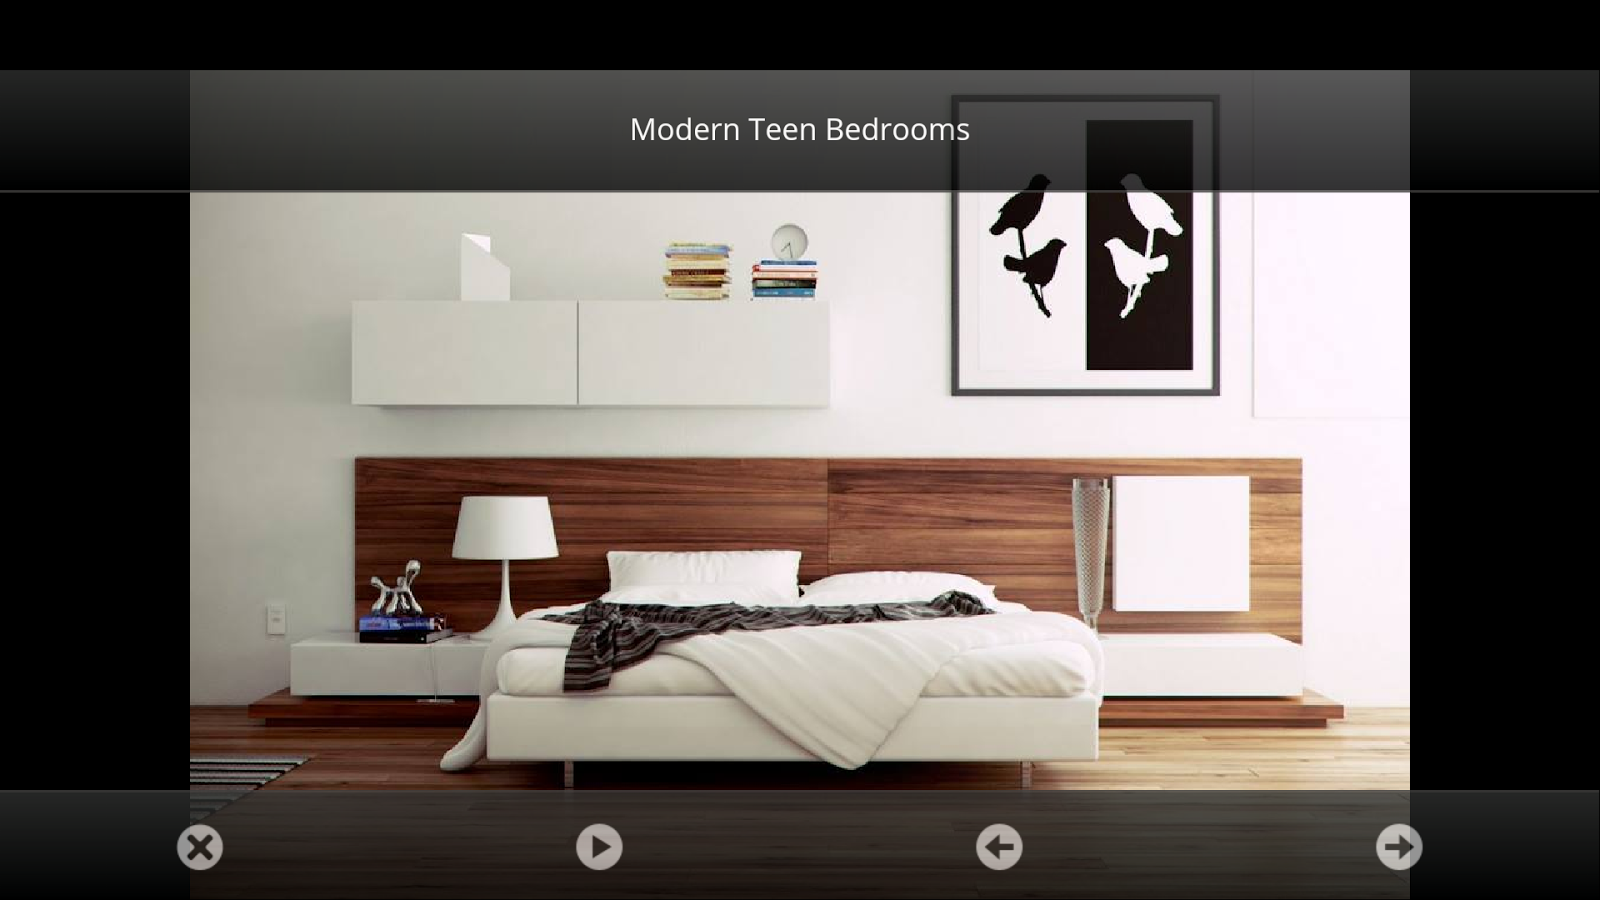 Modern bedroom wall decorating ideas - Bedroom Decorating Ideas Screenshot